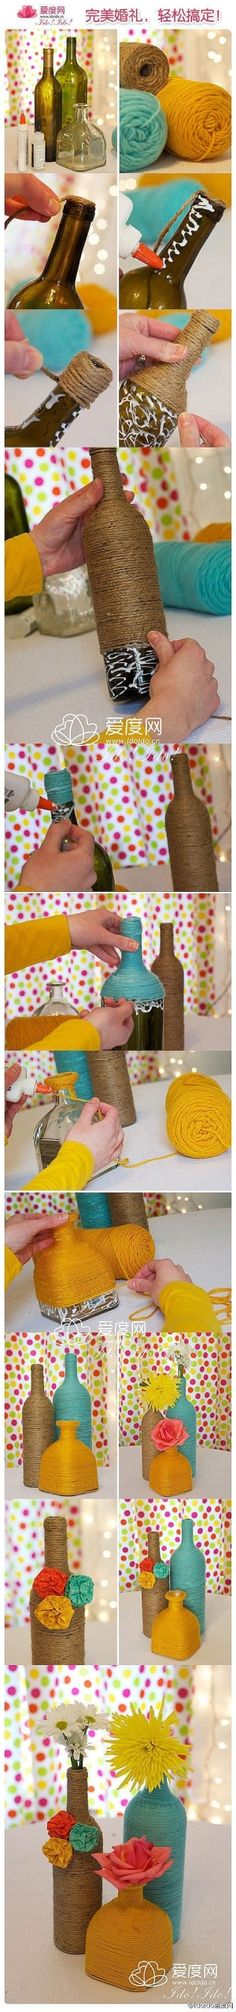 DIY Yarn Bottle Vase by kari